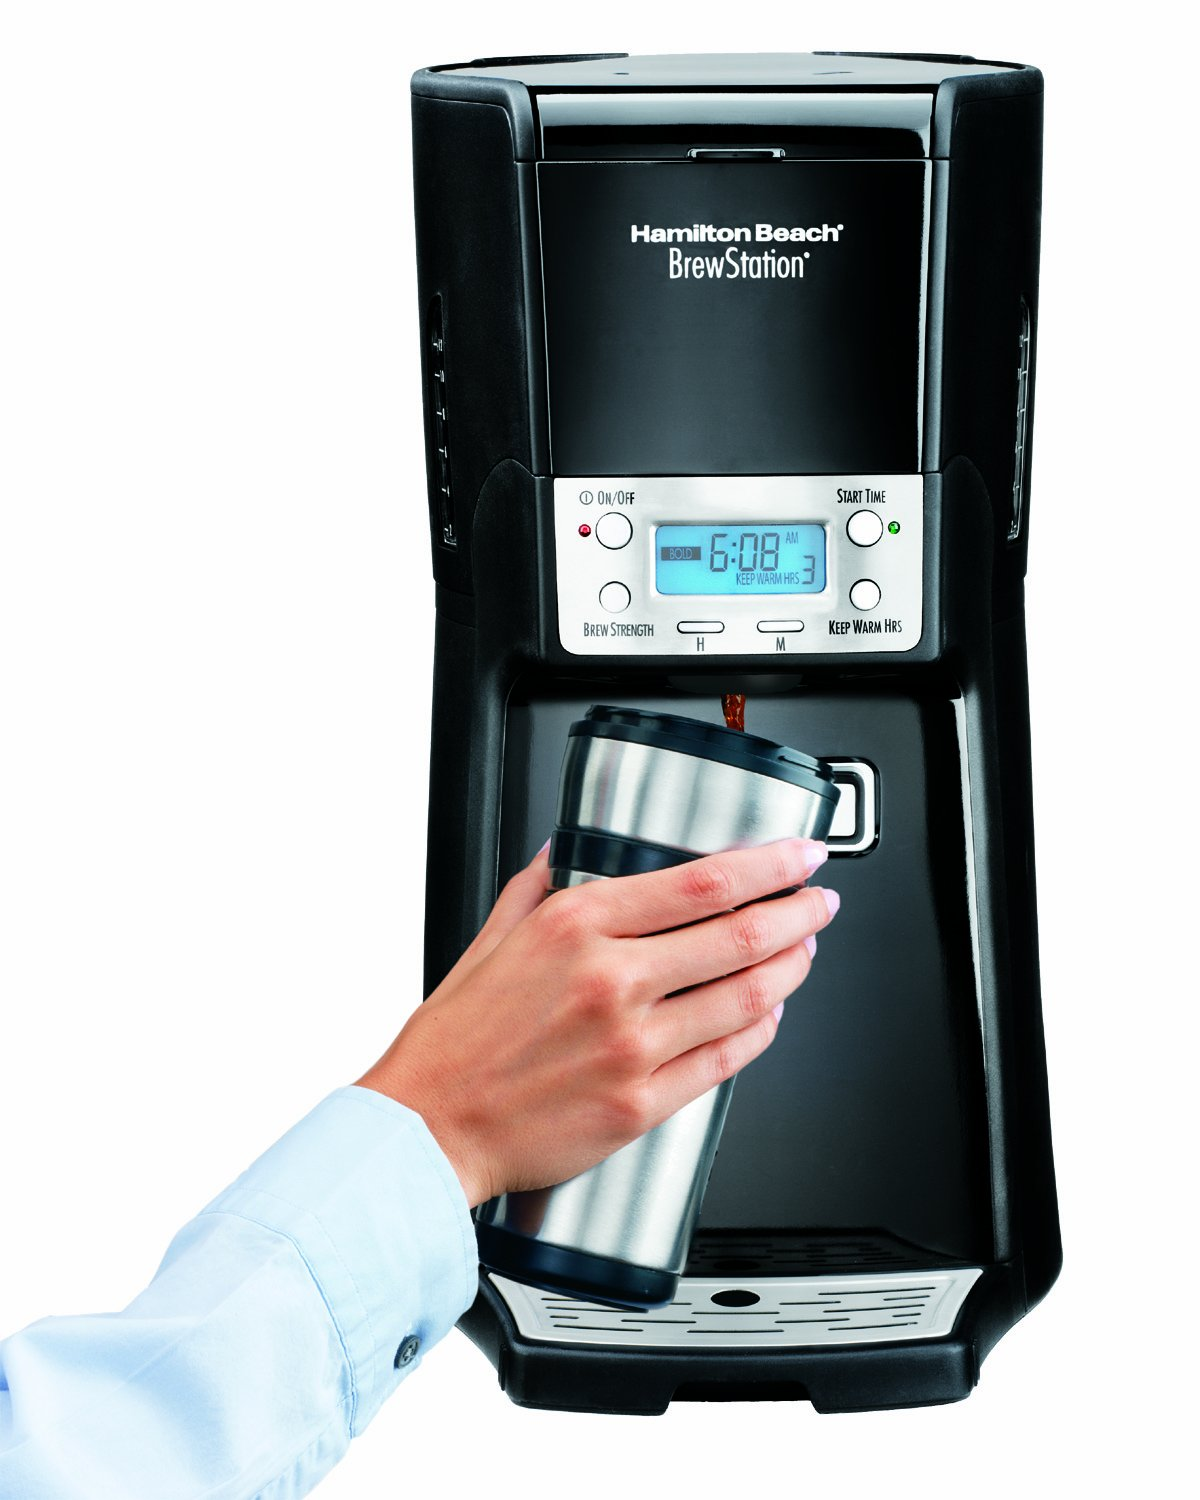 Hamilton Beach Brew Station Summit 12-Cup Dispensing Drip Coffeemaker (48463)